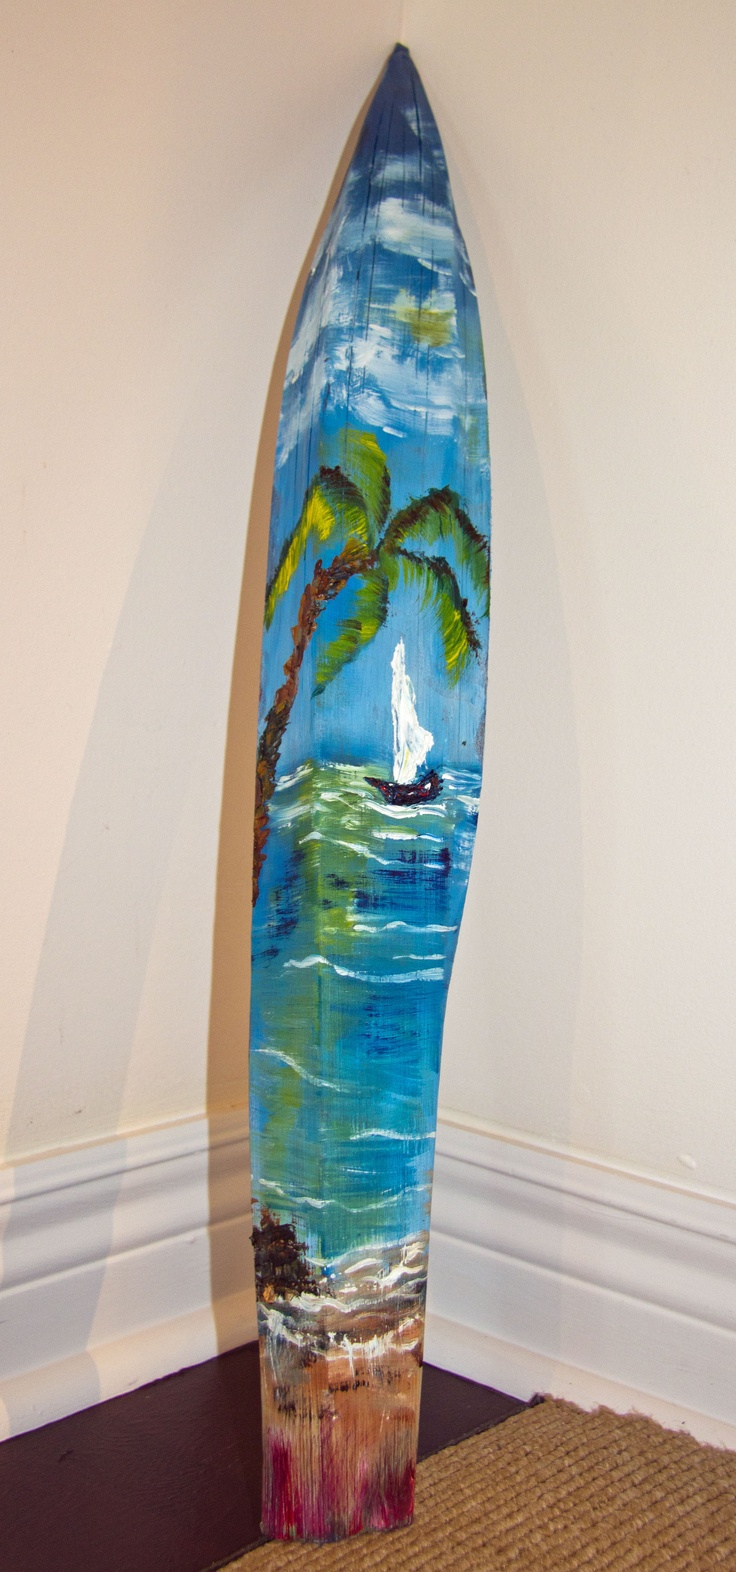 One of a kind oil painting on coconut bark. Must ask for one, it's beautiful.